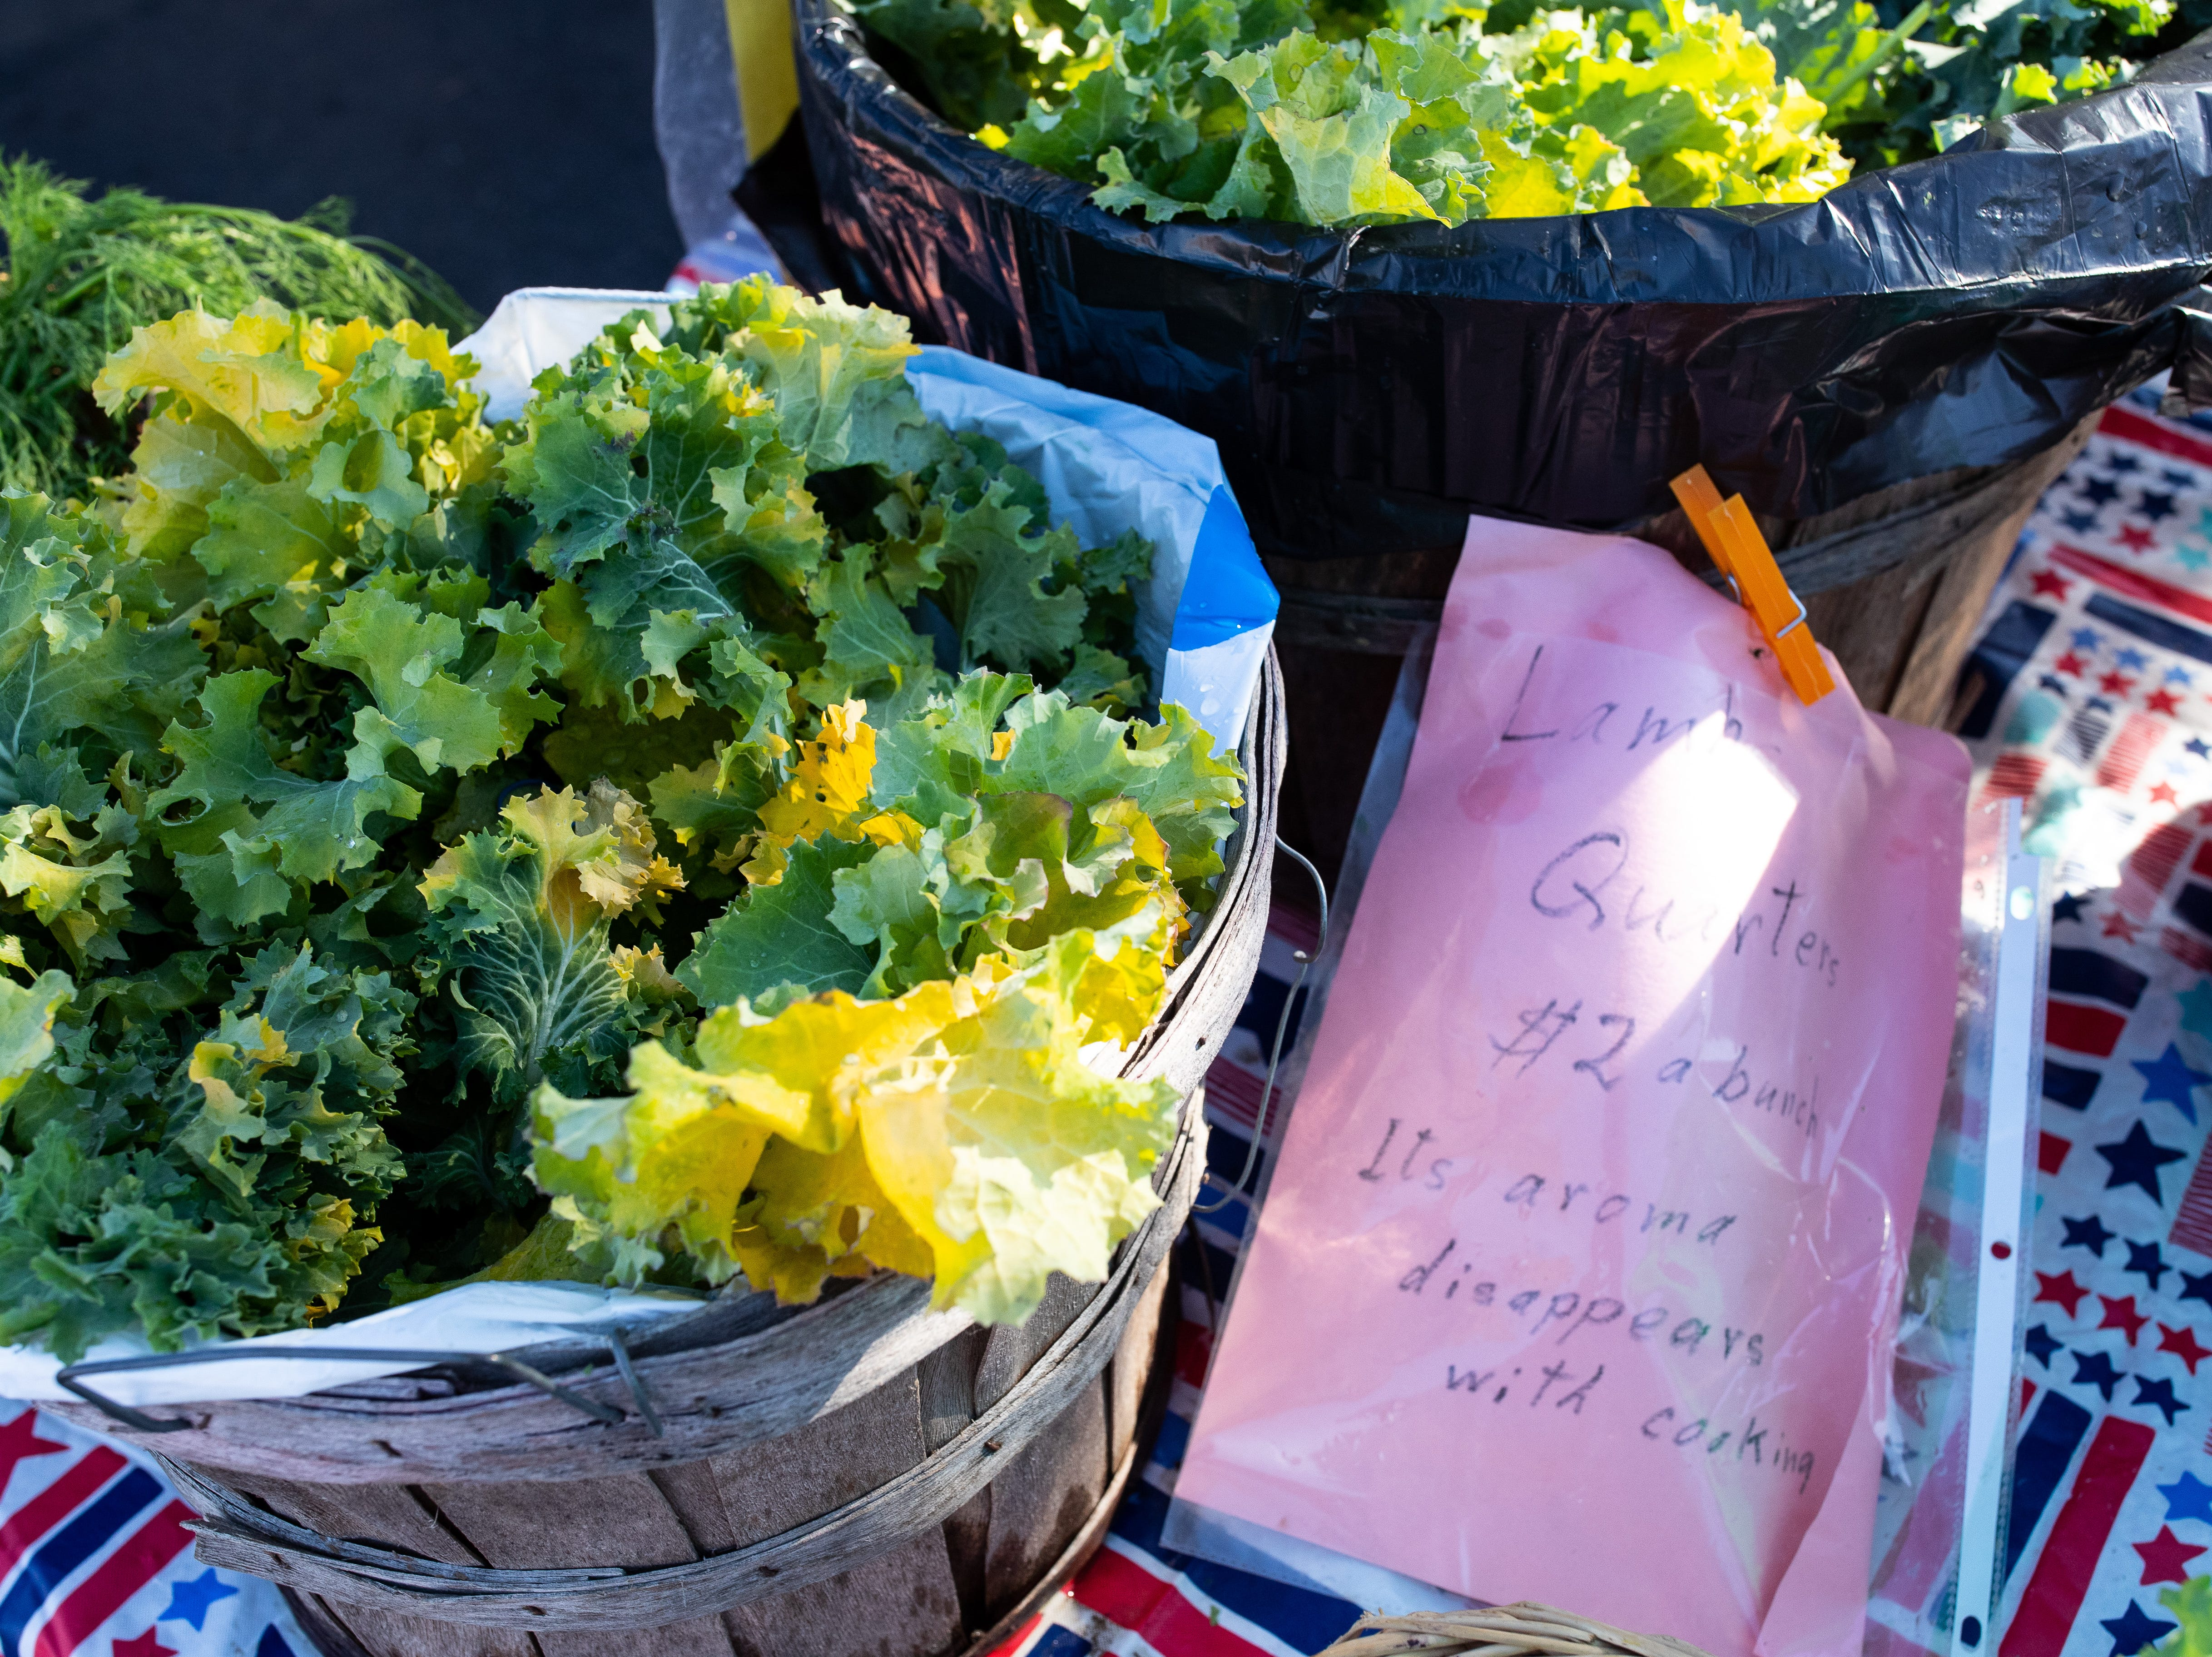 Greens for sale at the Corpus Christi Southside Farmers' Market located at 5800 Everhart Road on Saturday, Jan. 5, 2019.